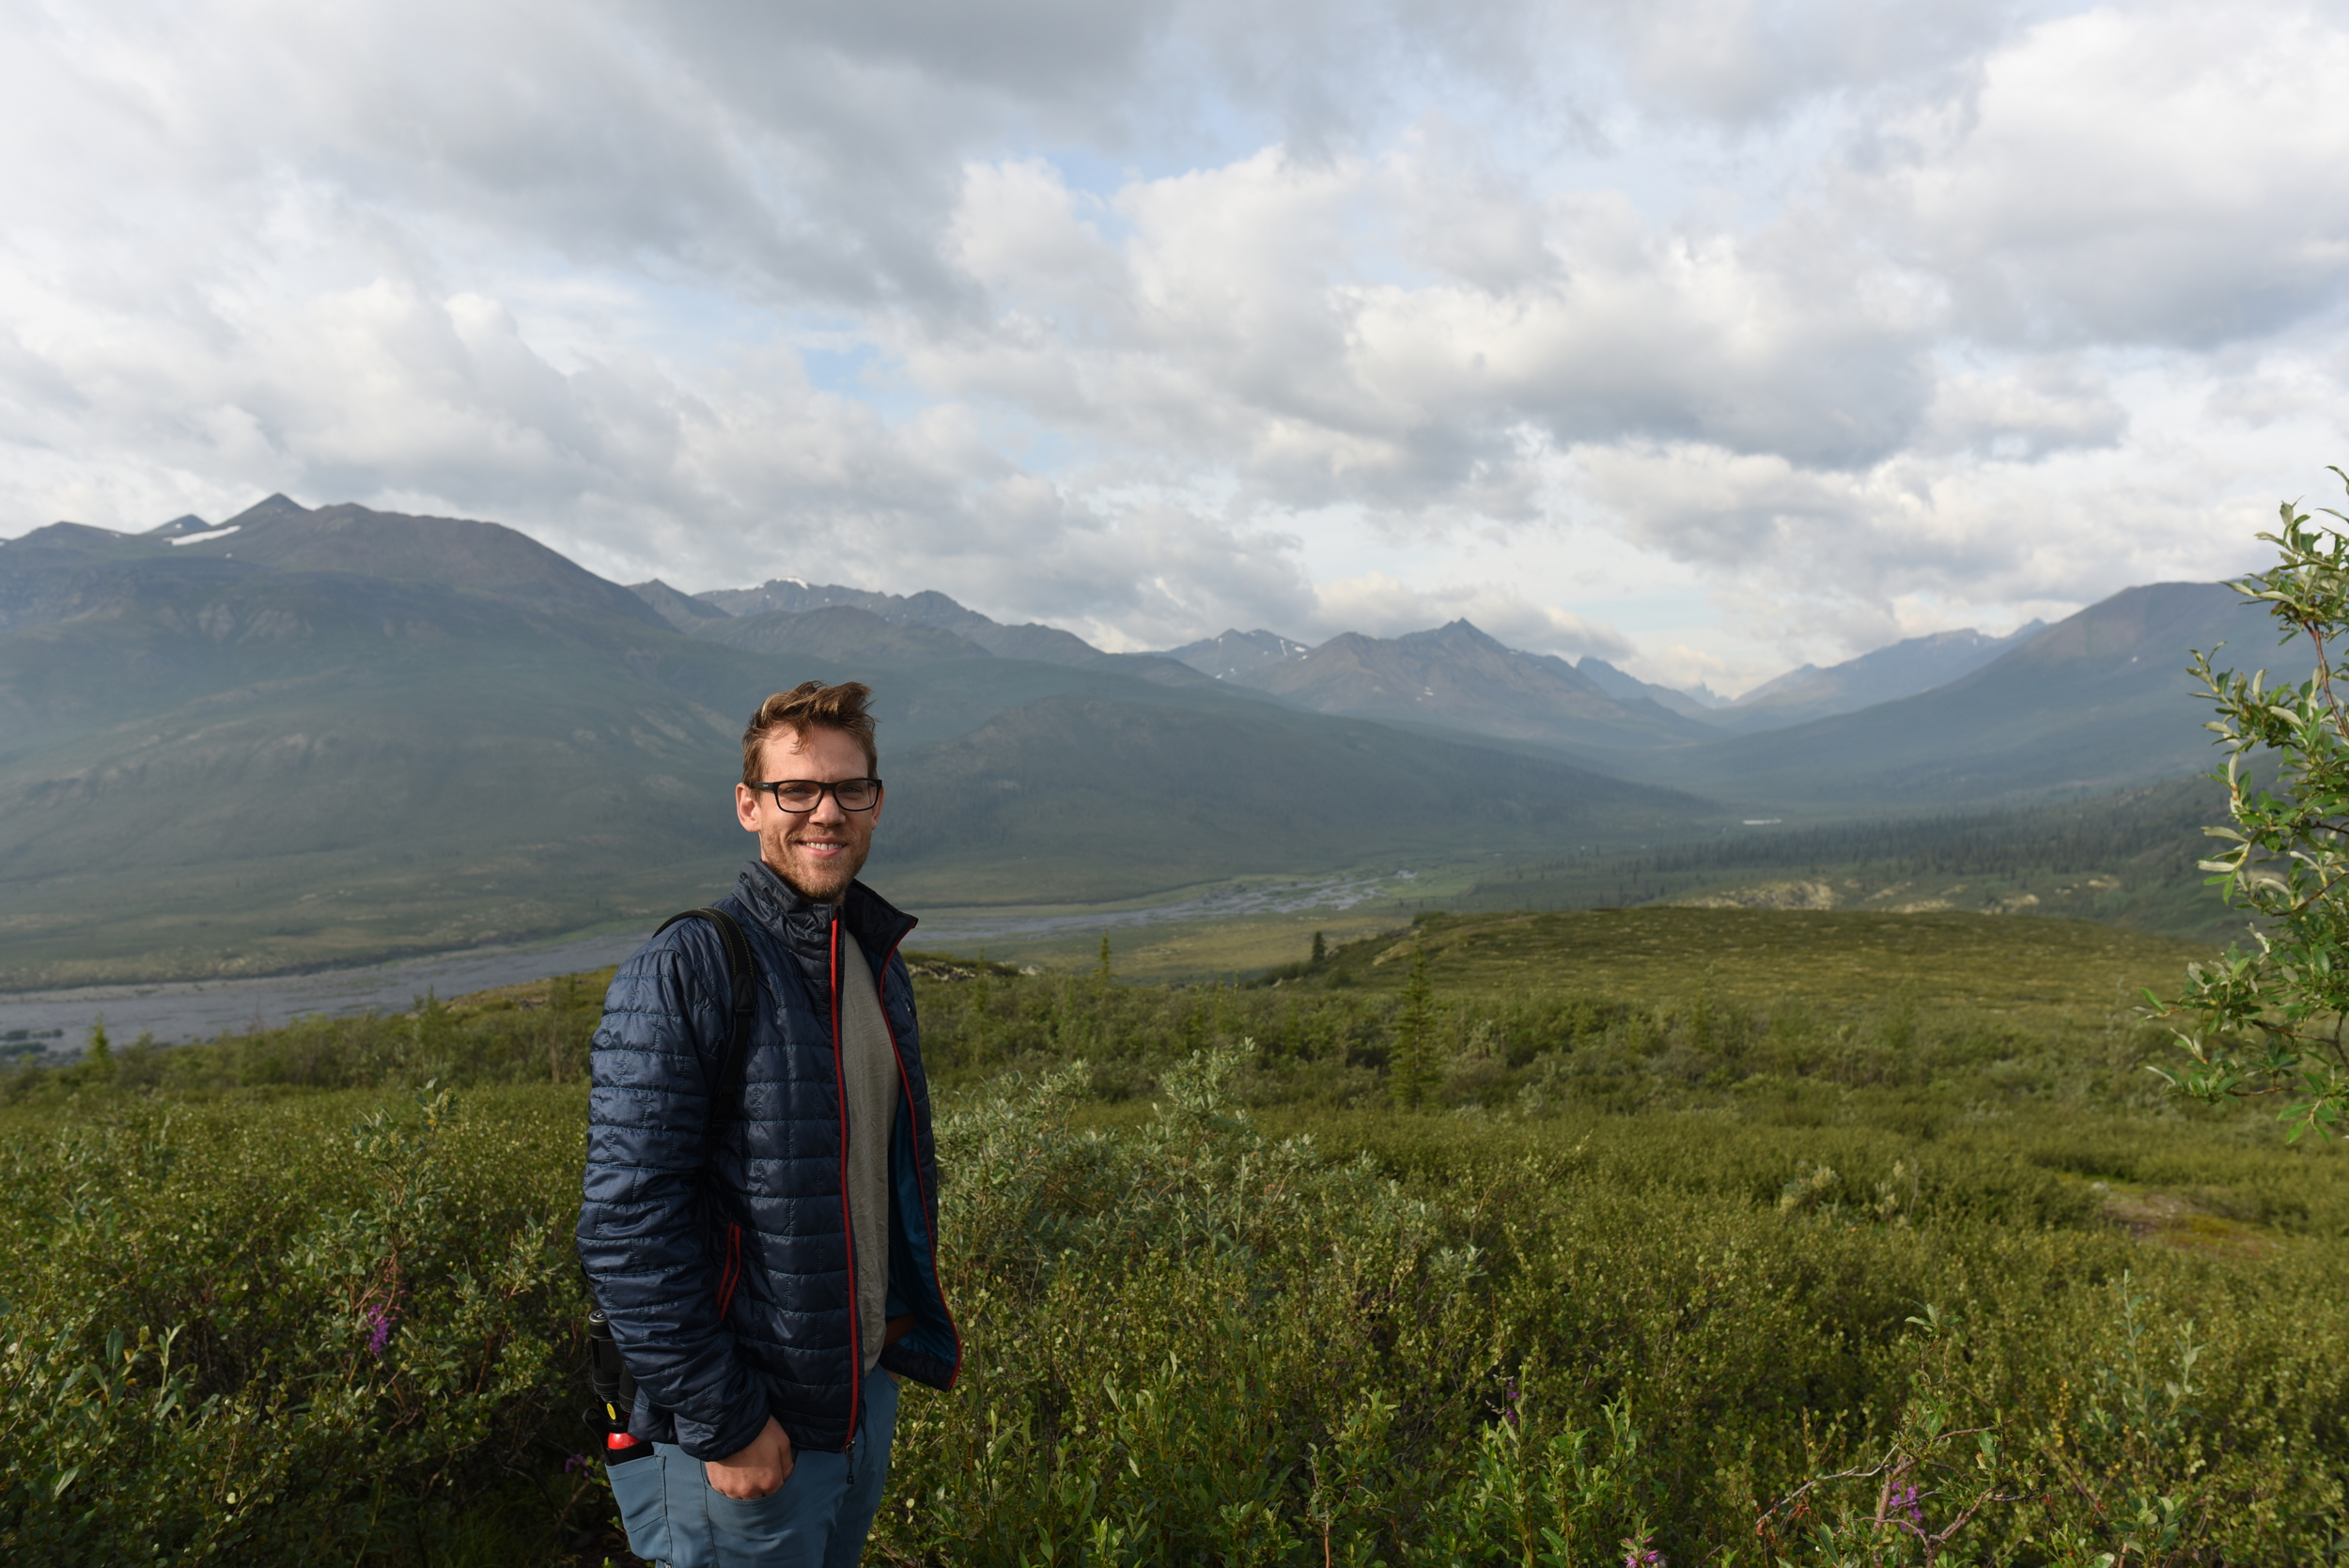 Michael at the viewpoint near the campground on the Dempster Highway